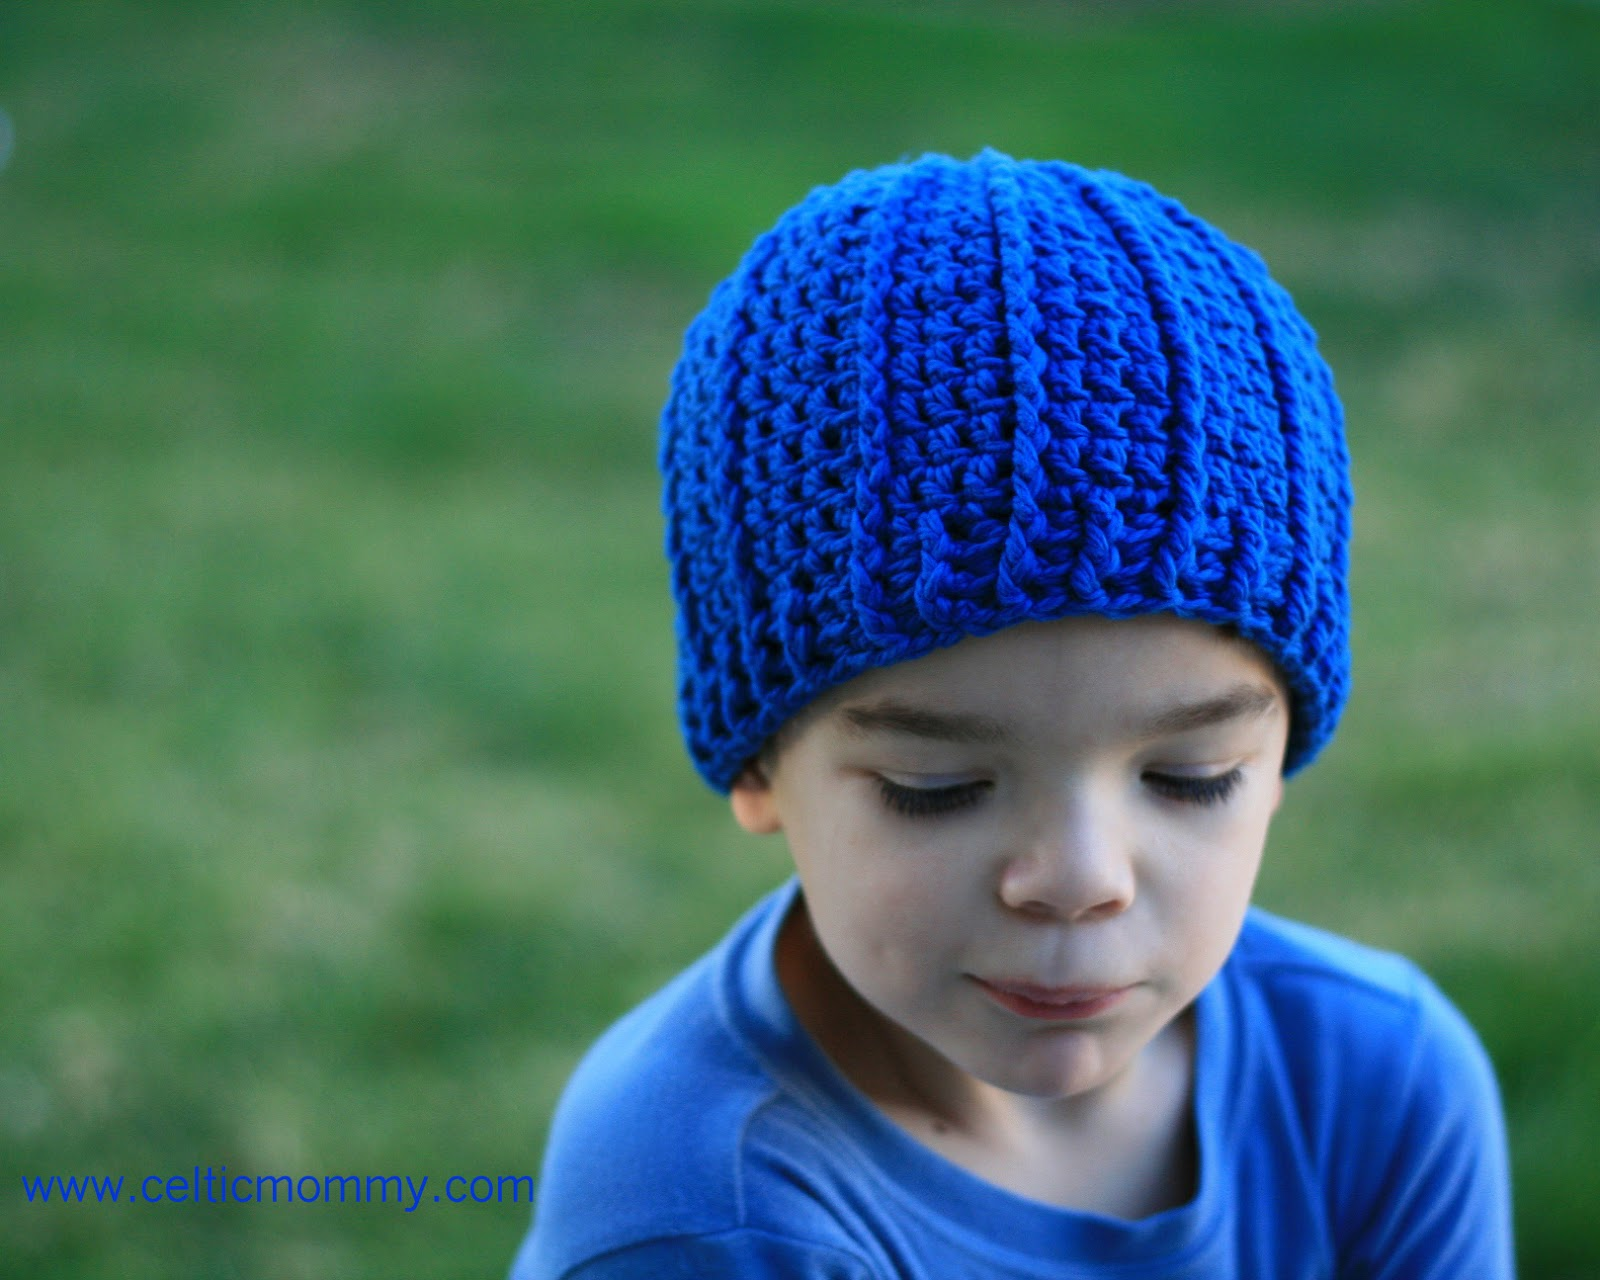 CelticMommy: Free crochet pattern: Rib wrapped cap for children